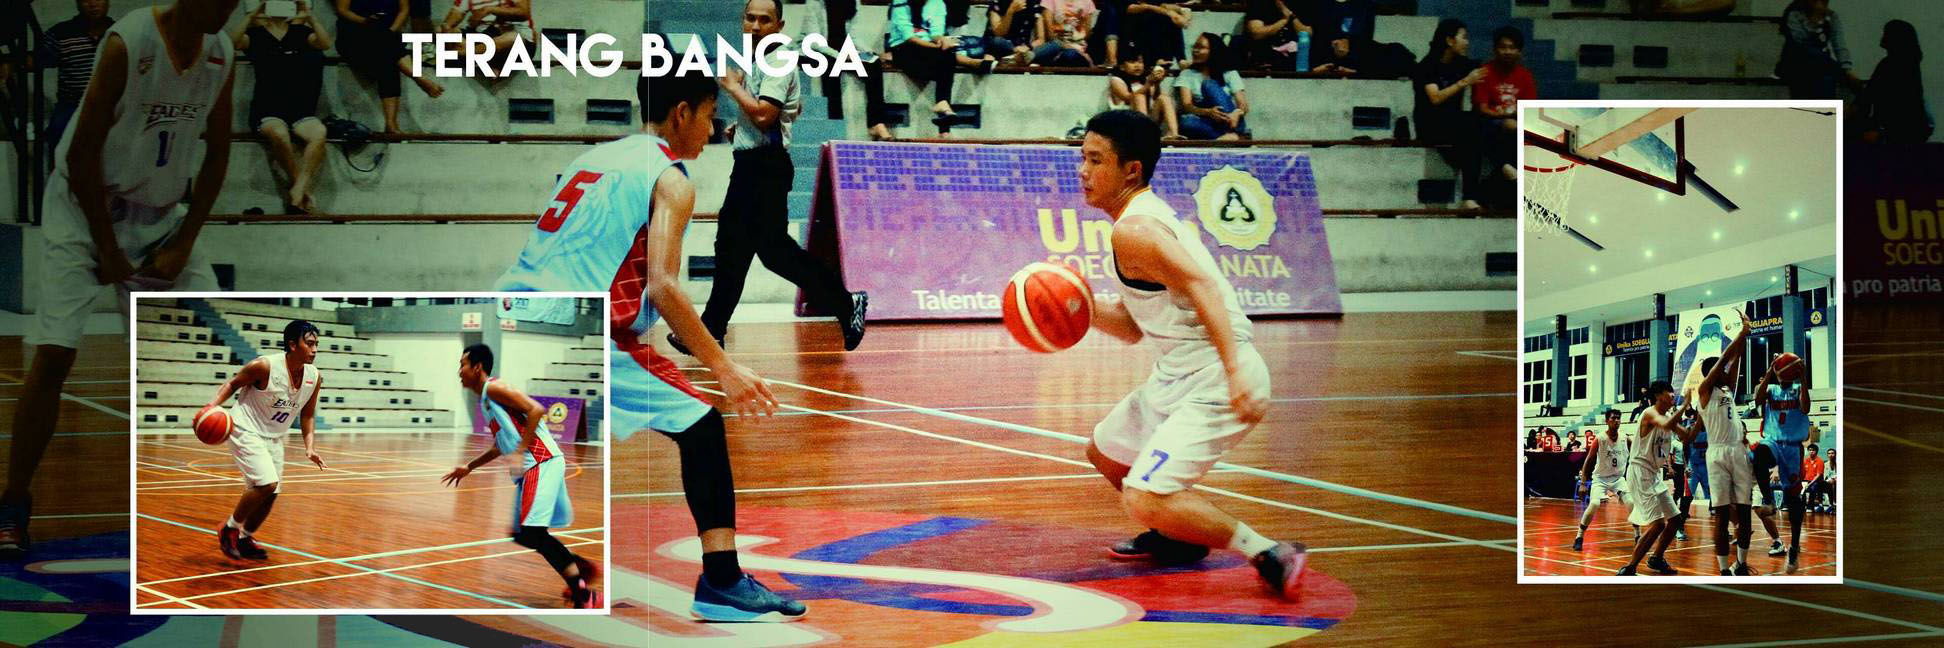 Team Basket Terang Bangsa